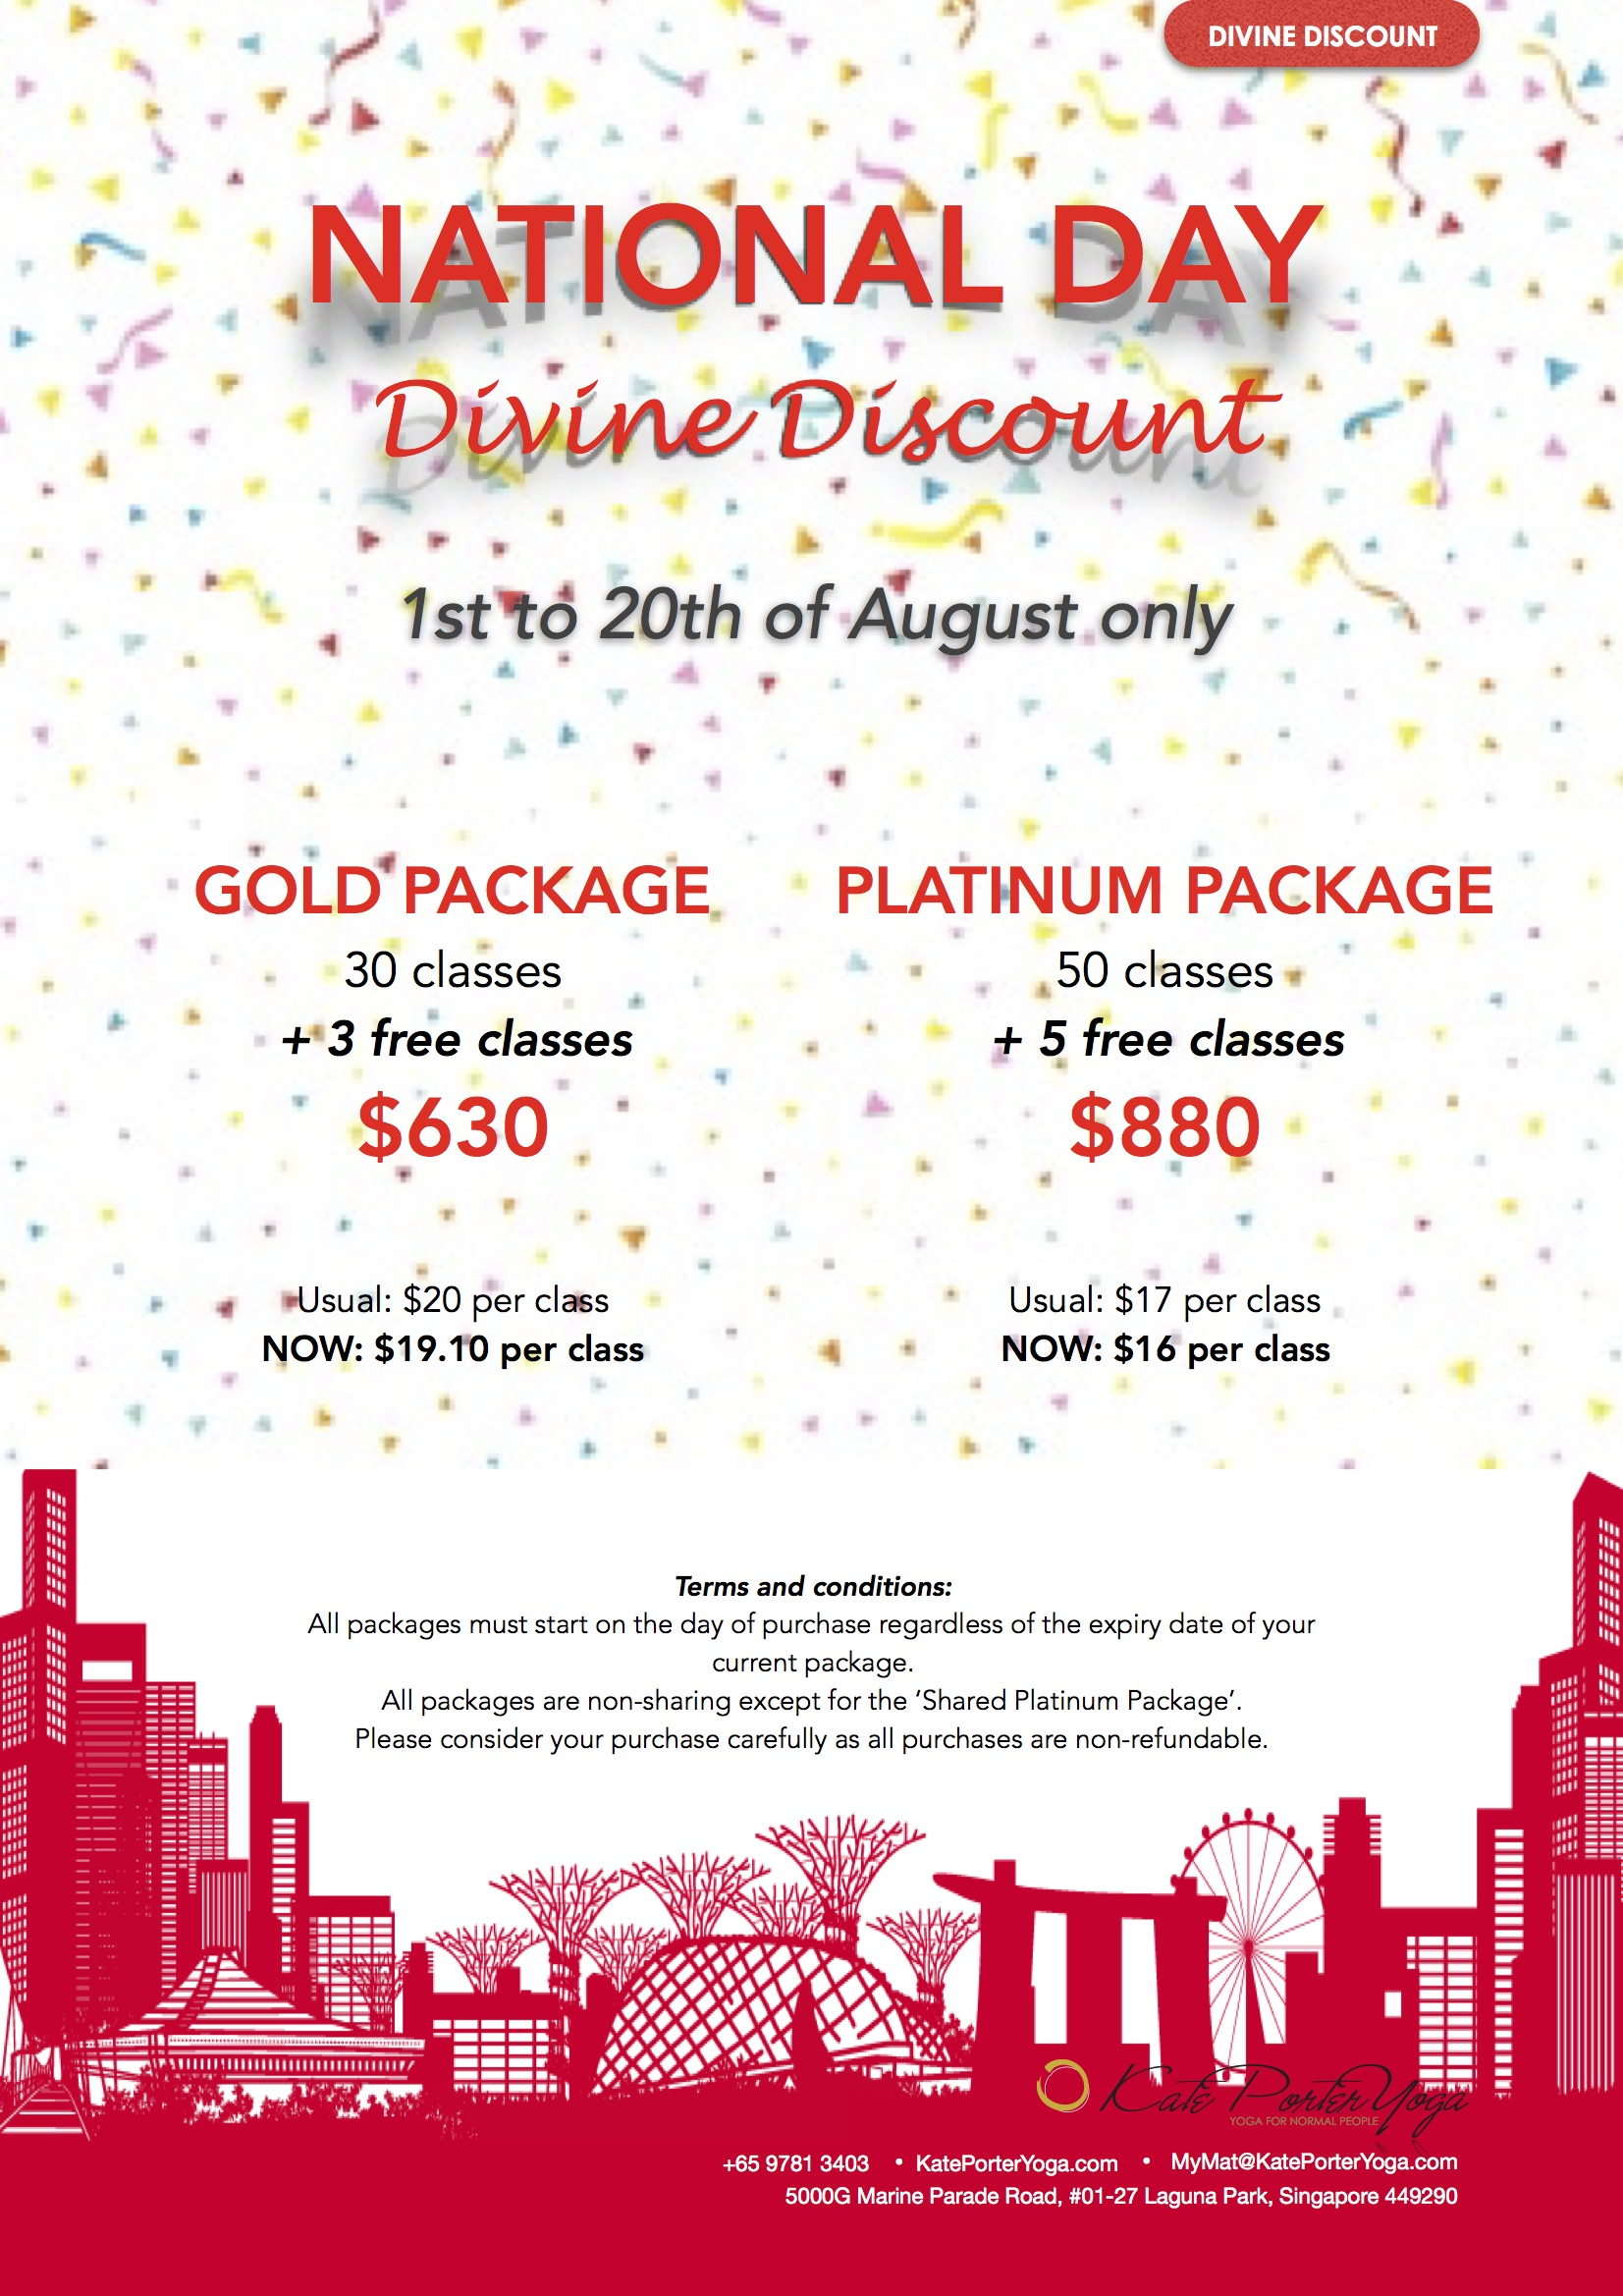 National Day Divine Discount 2017